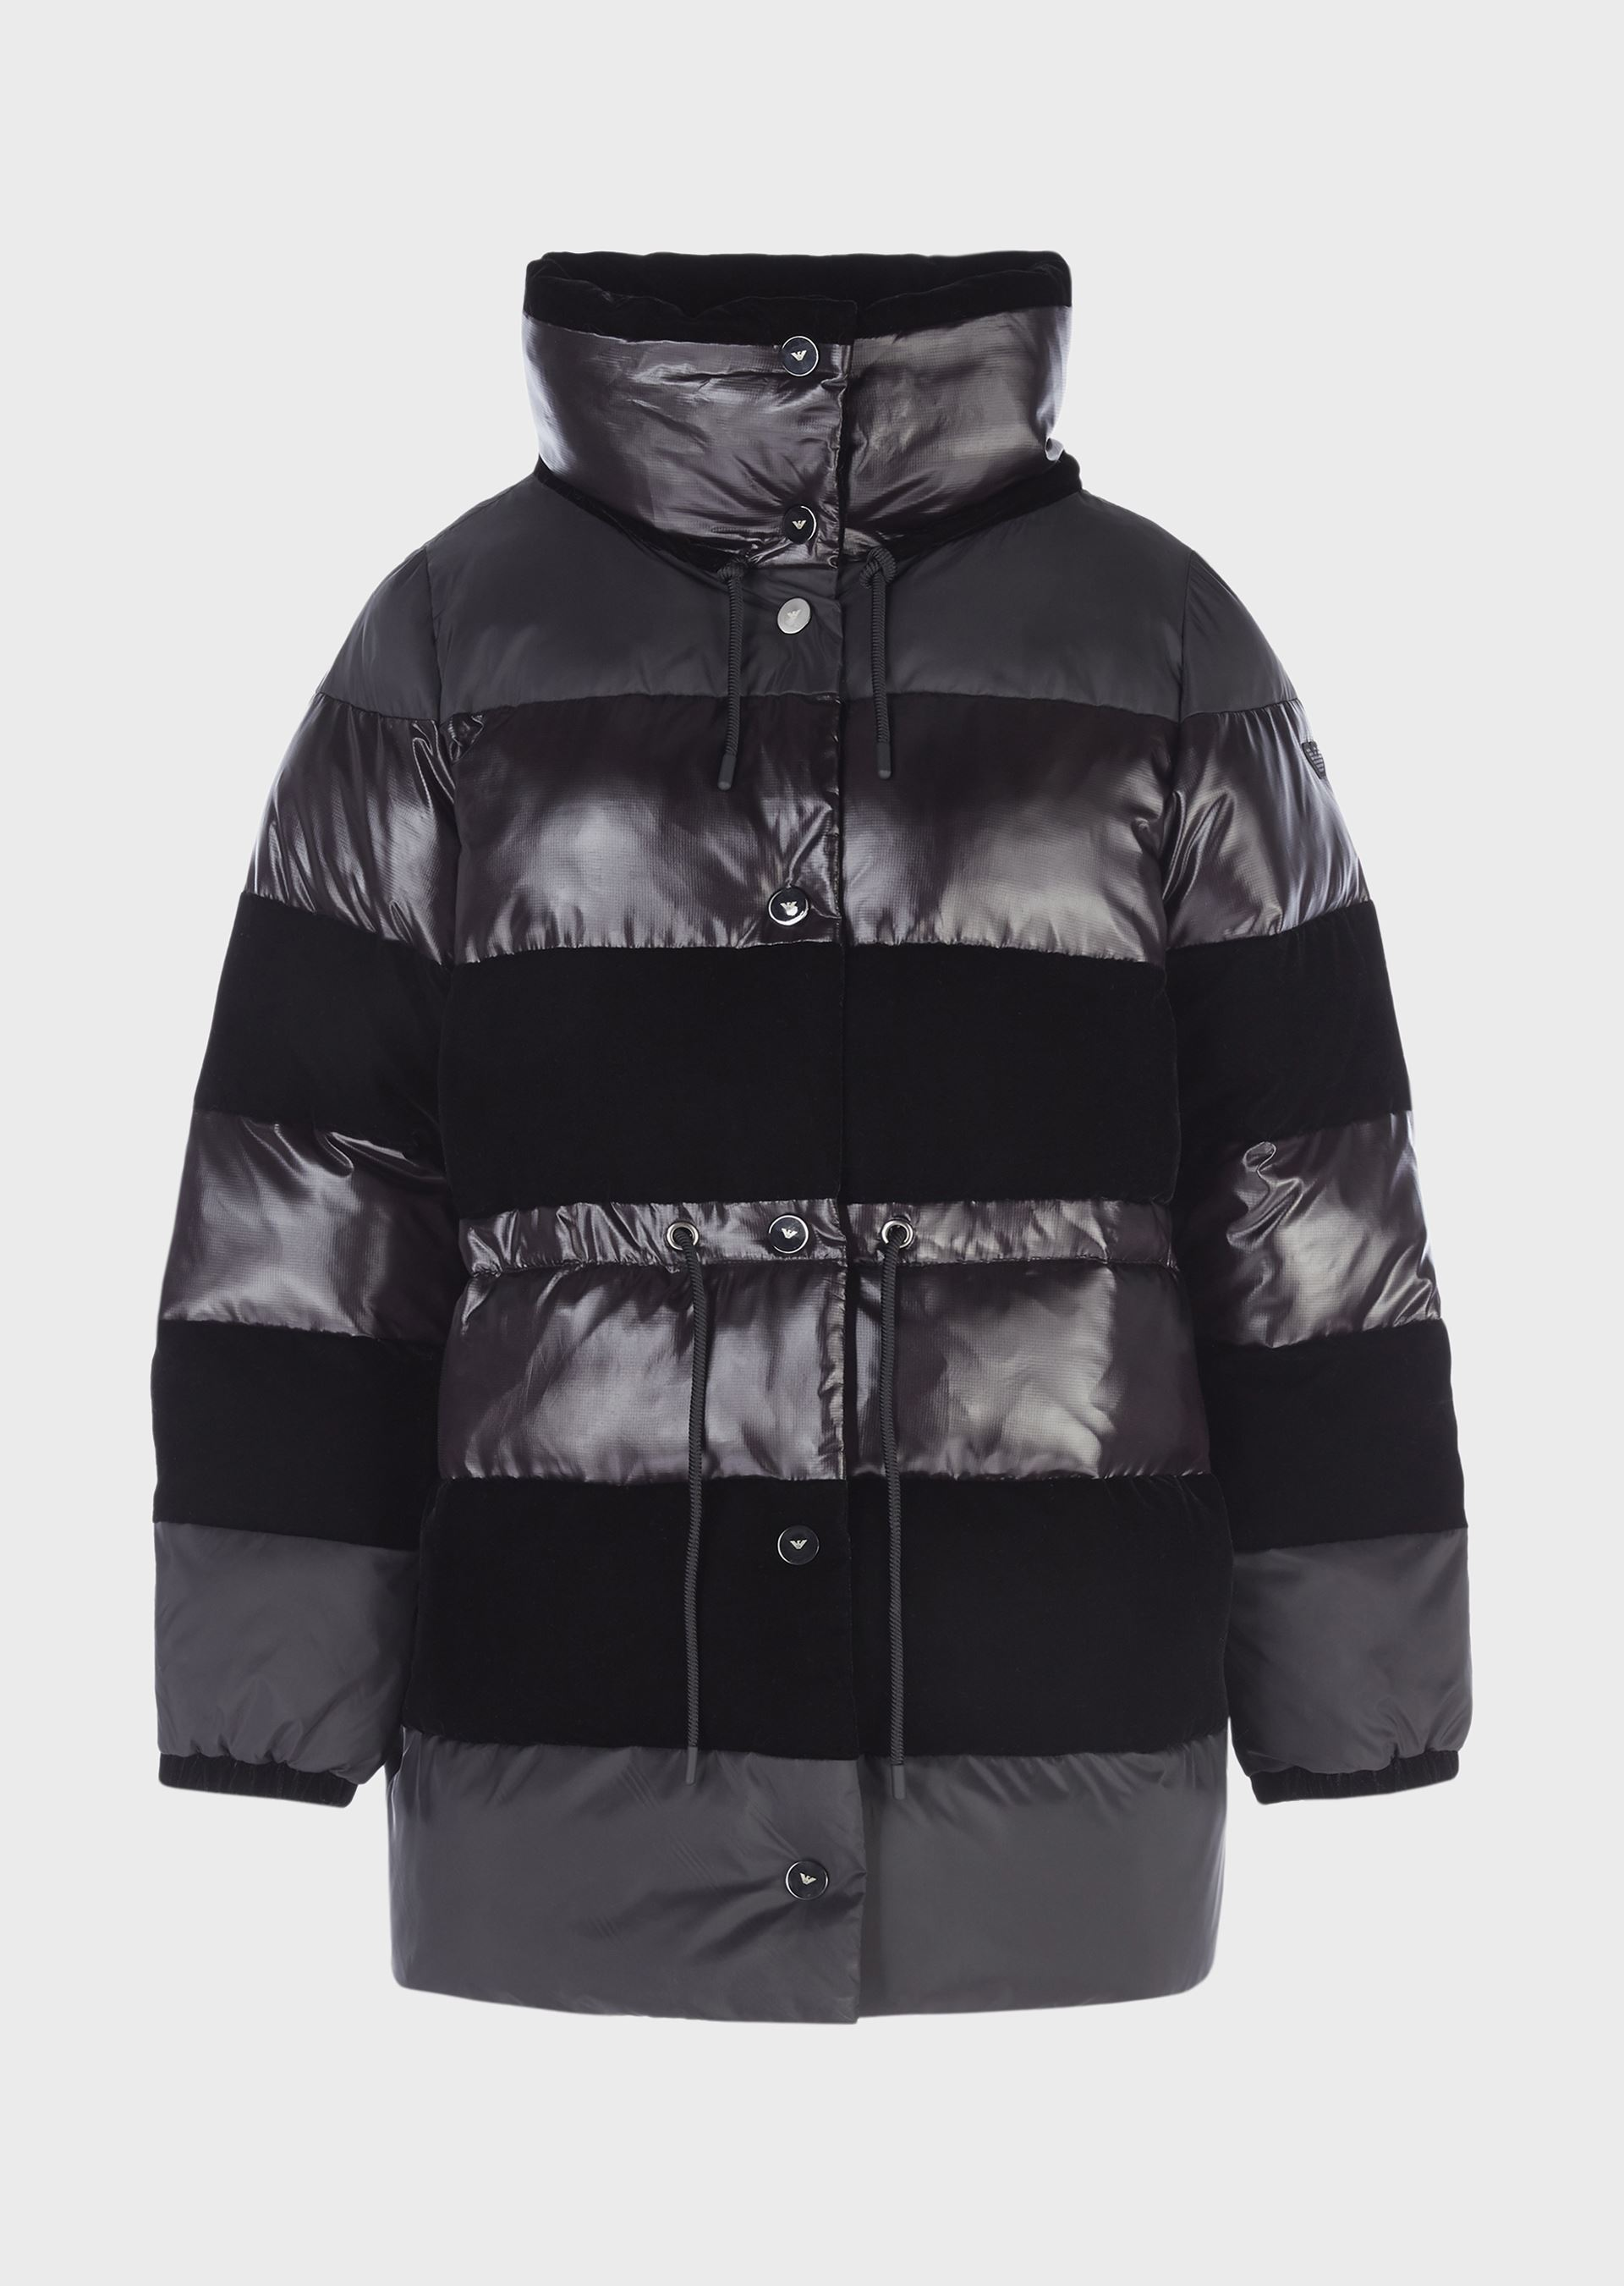 Emporio Armani Downs PUFFER JACKETS - ITEM 41984079